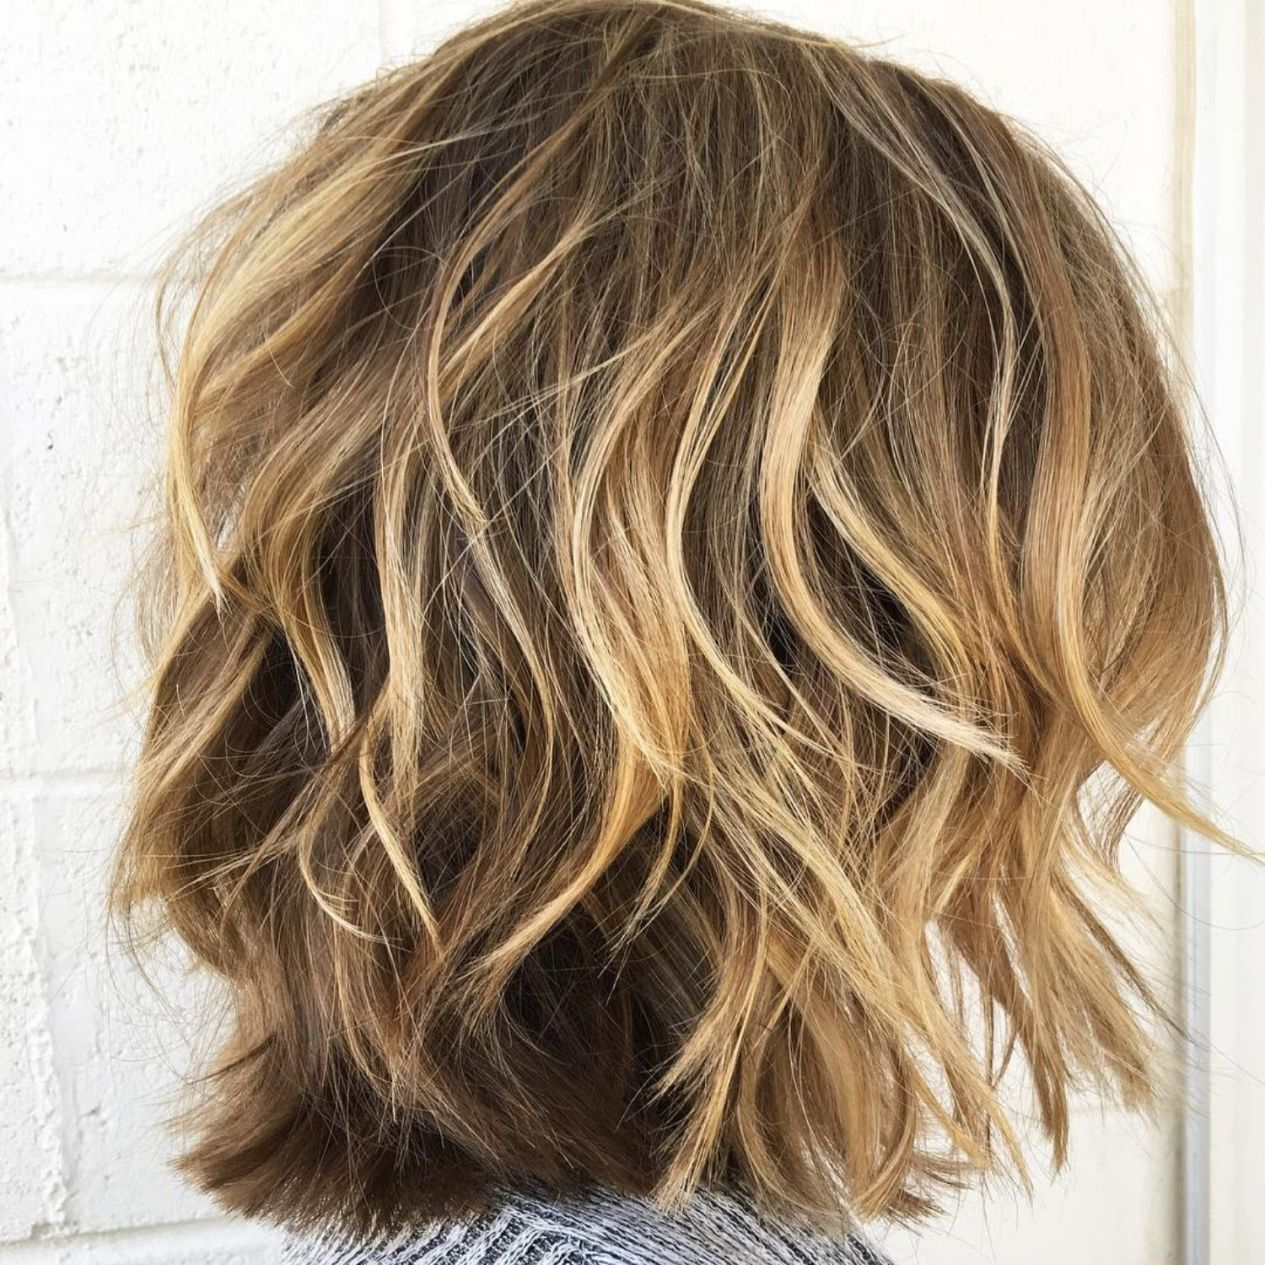 60 Most Beneficial Haircuts For Thick Hair Of Any Length Thick Hair Styles Haircut For Thick Hair Thick Wavy Haircuts